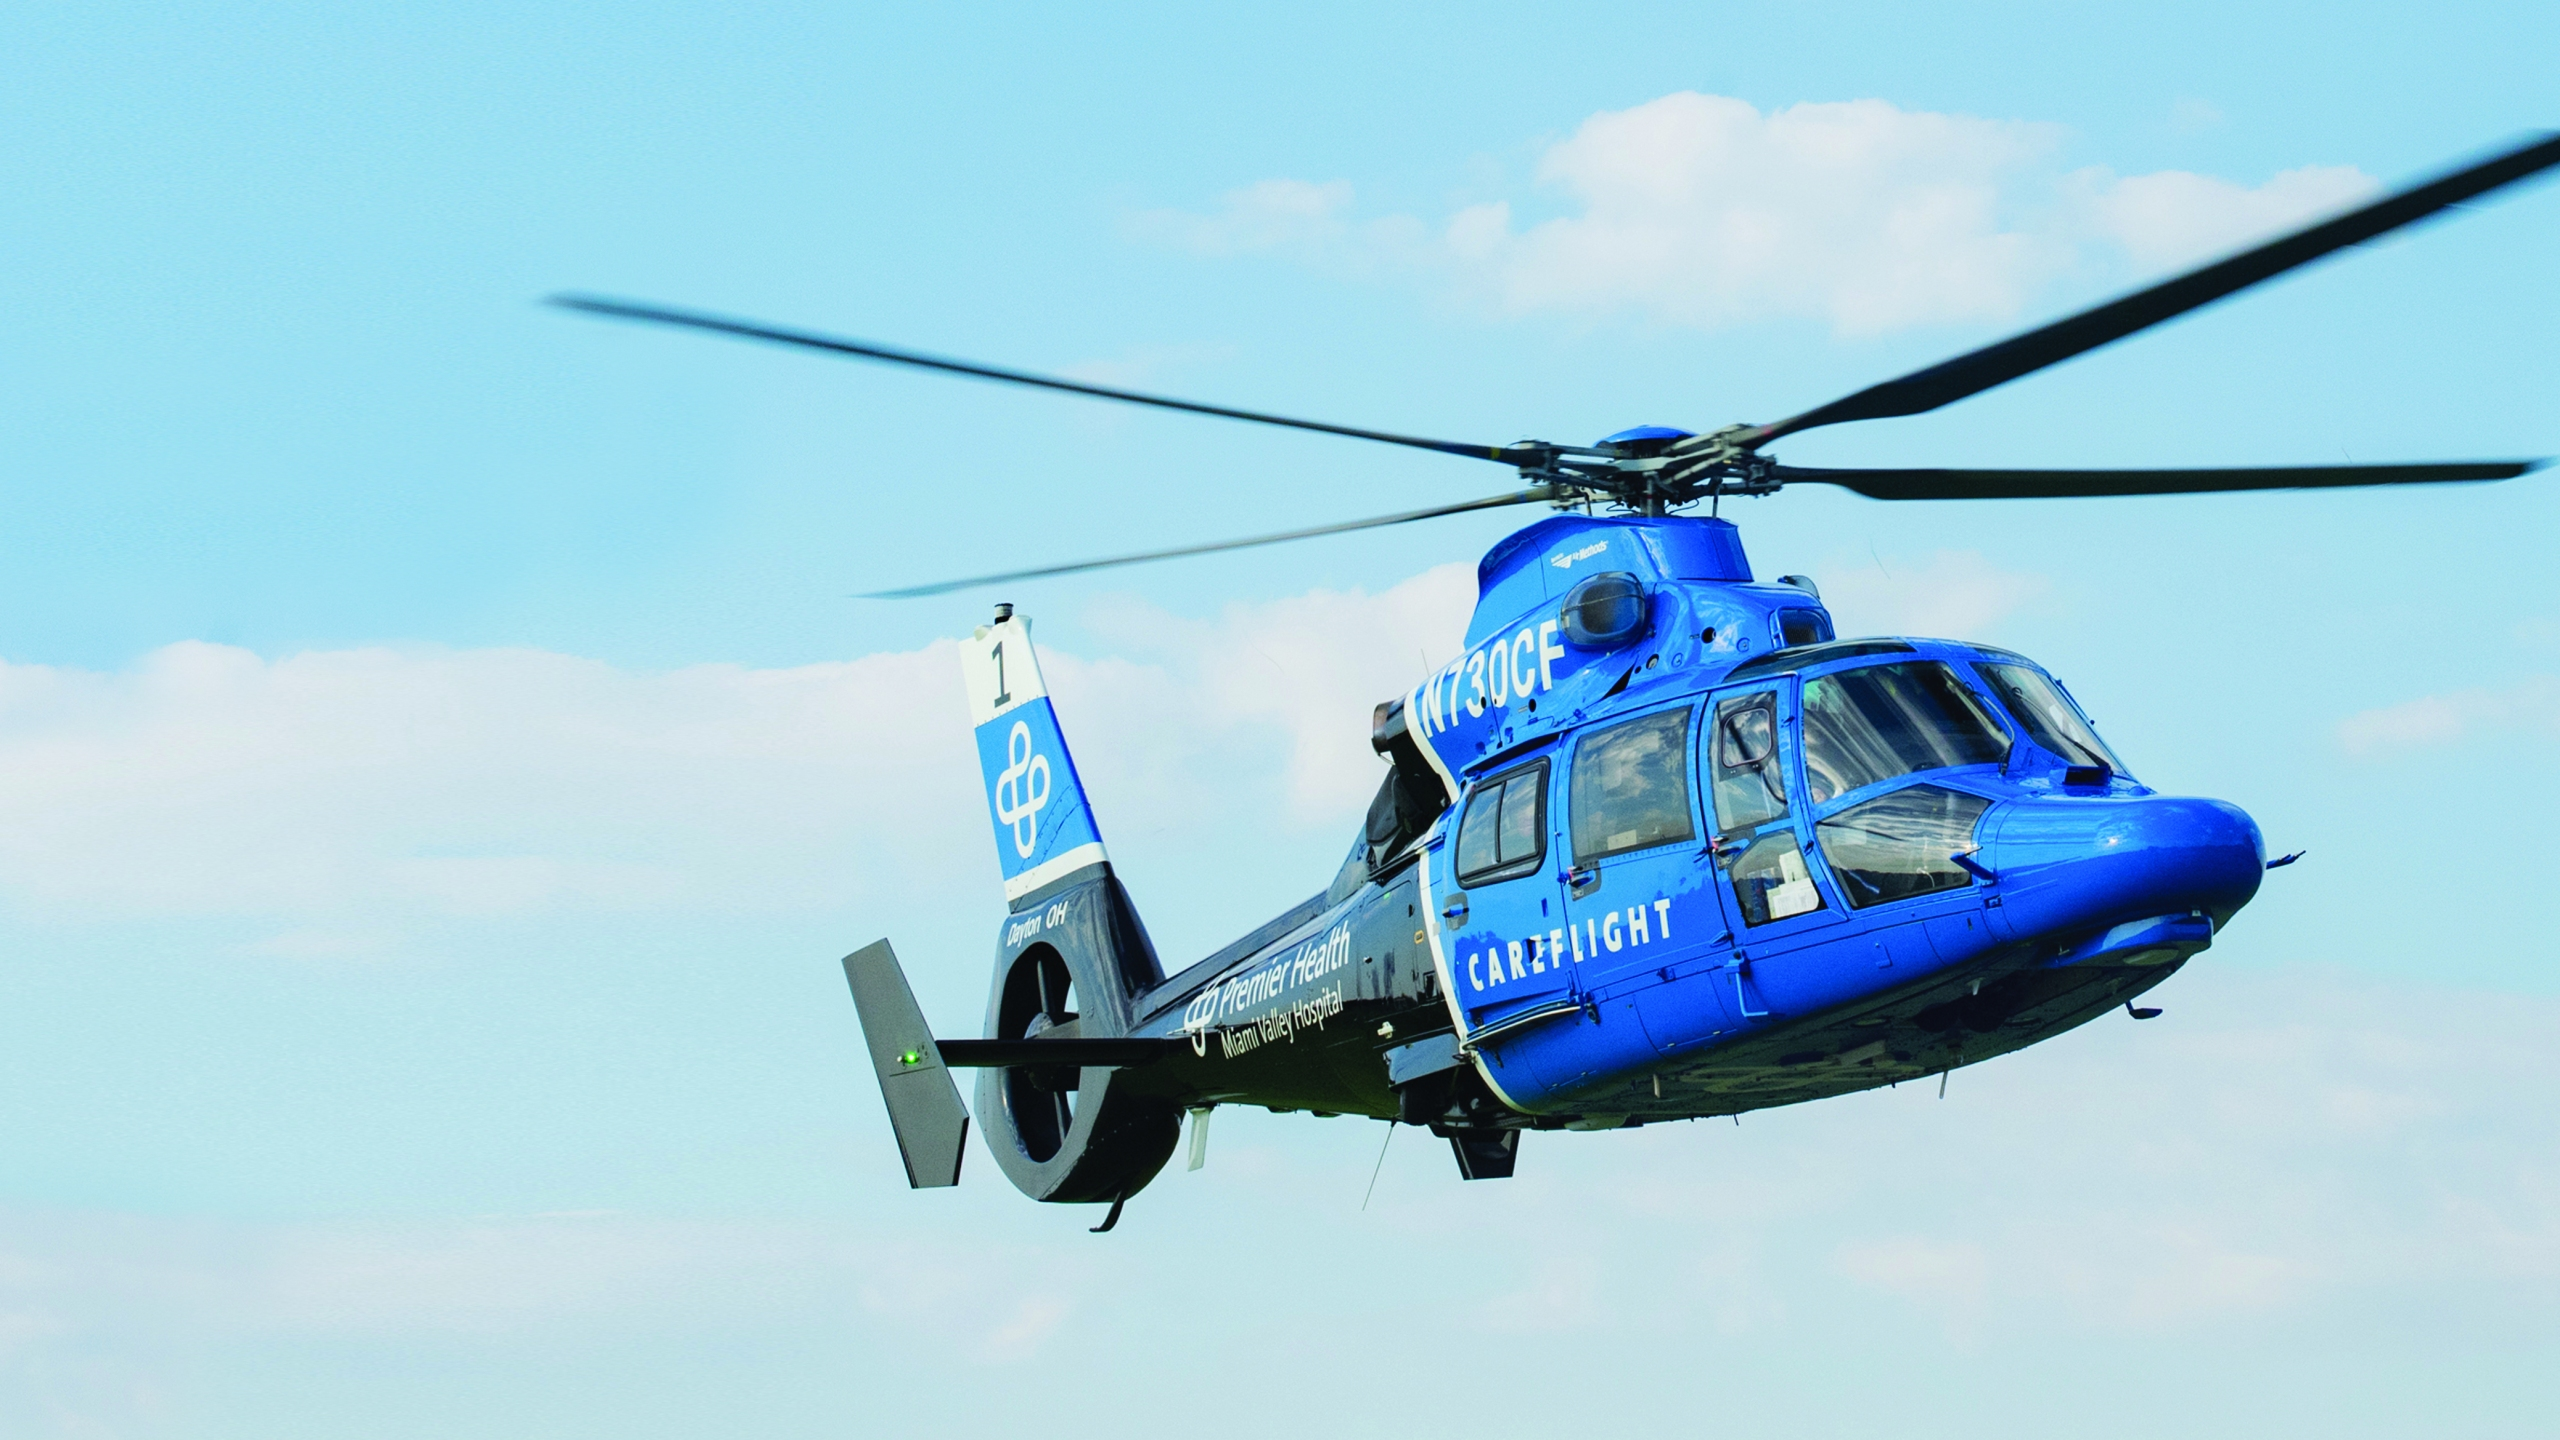 CareFlight Helicopter in flight